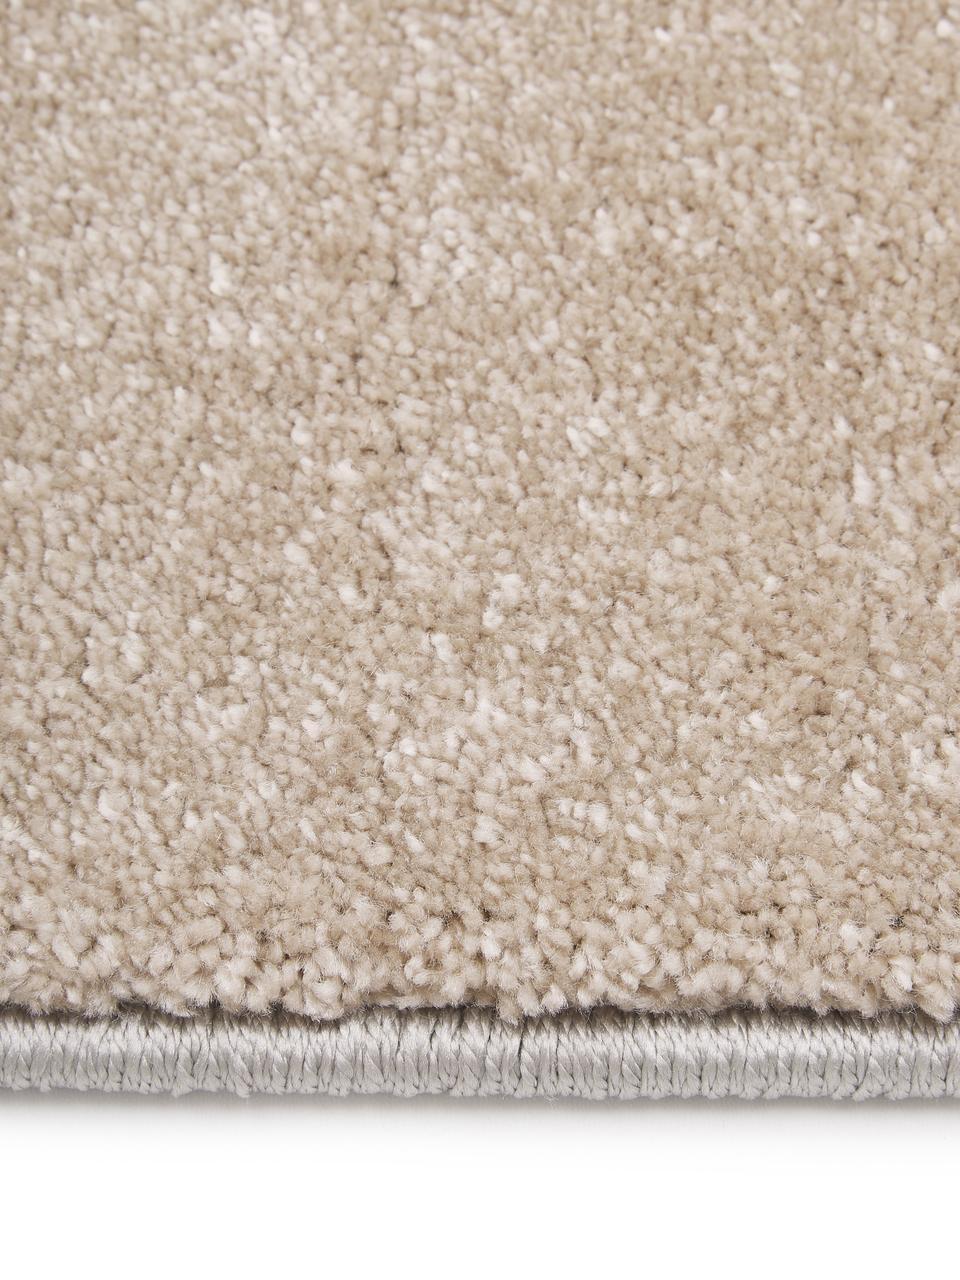 Tapis beige gris My Broadway, Taupe, beige, anthracite, gris